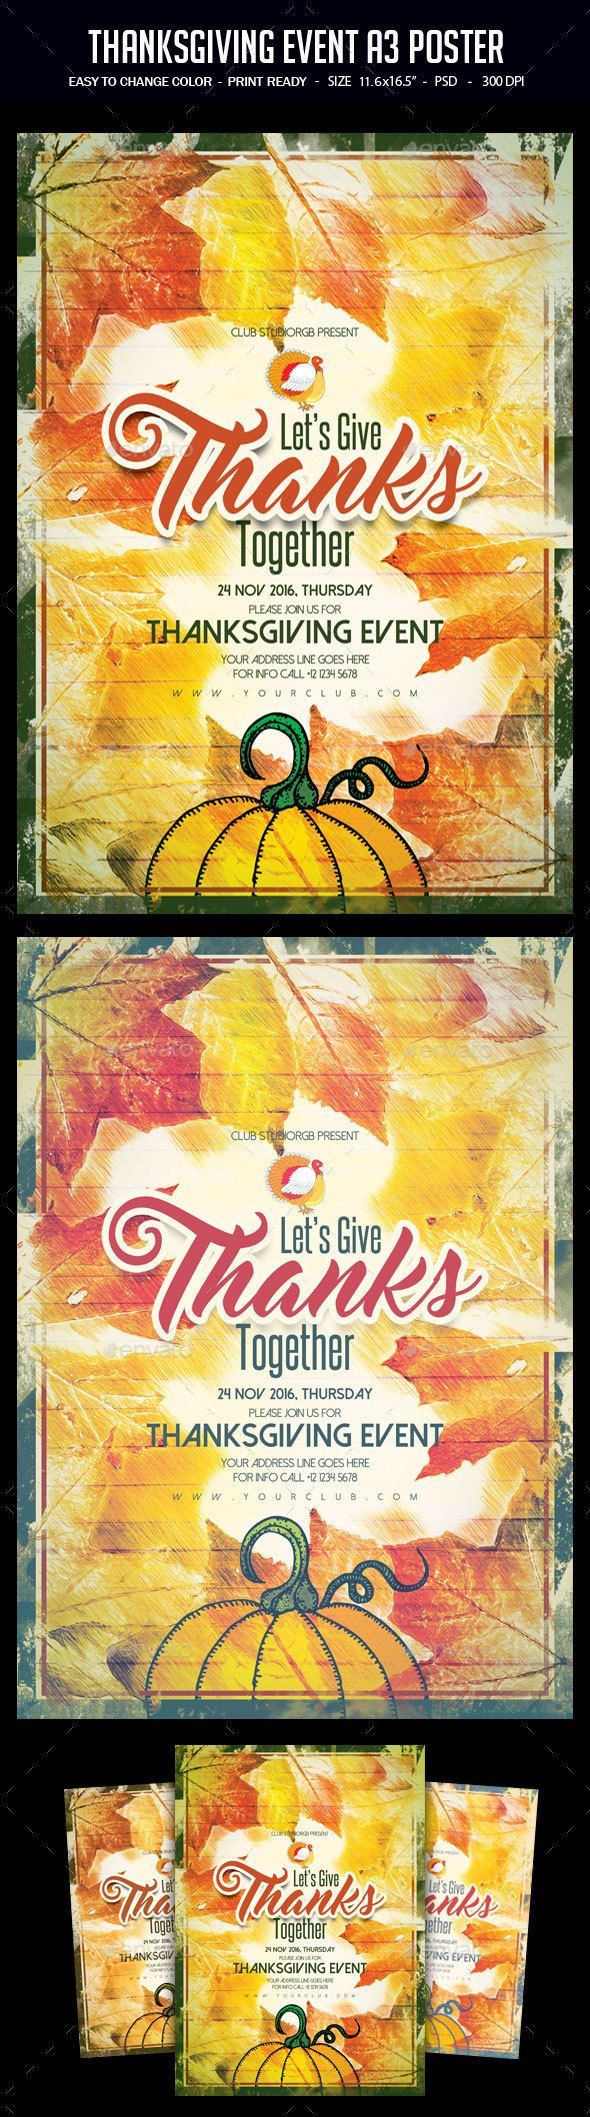 Thanksgiving Event A3 Poster Template PSD